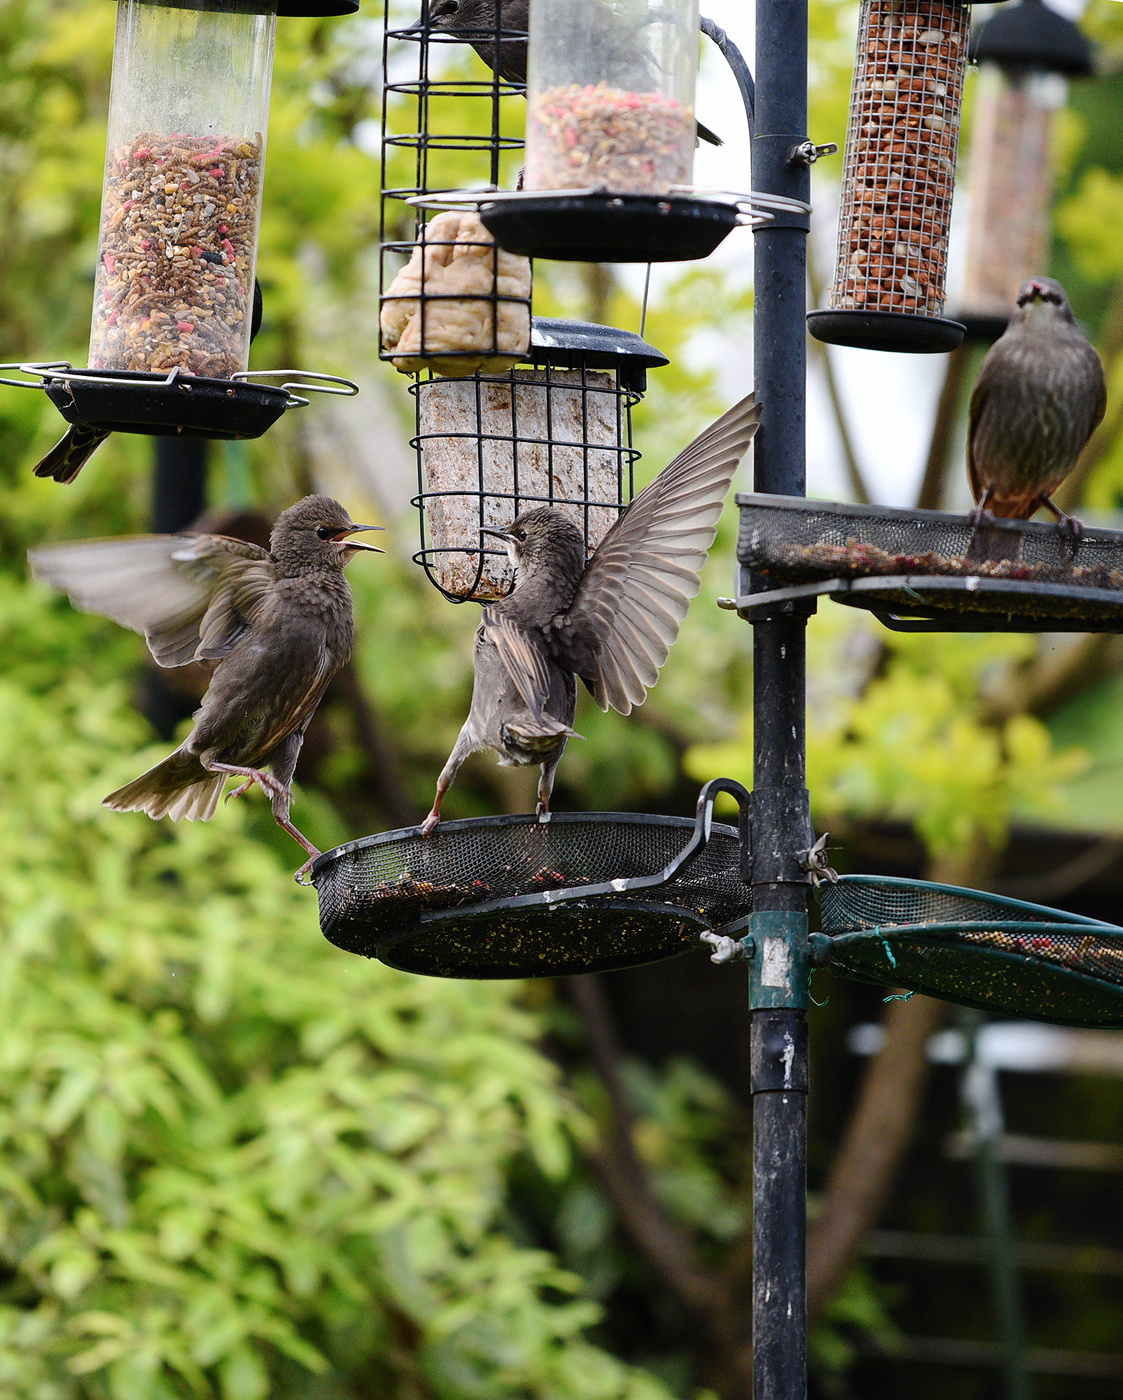 Starling Action - All creatures     - Wildlife - The RSPB Community